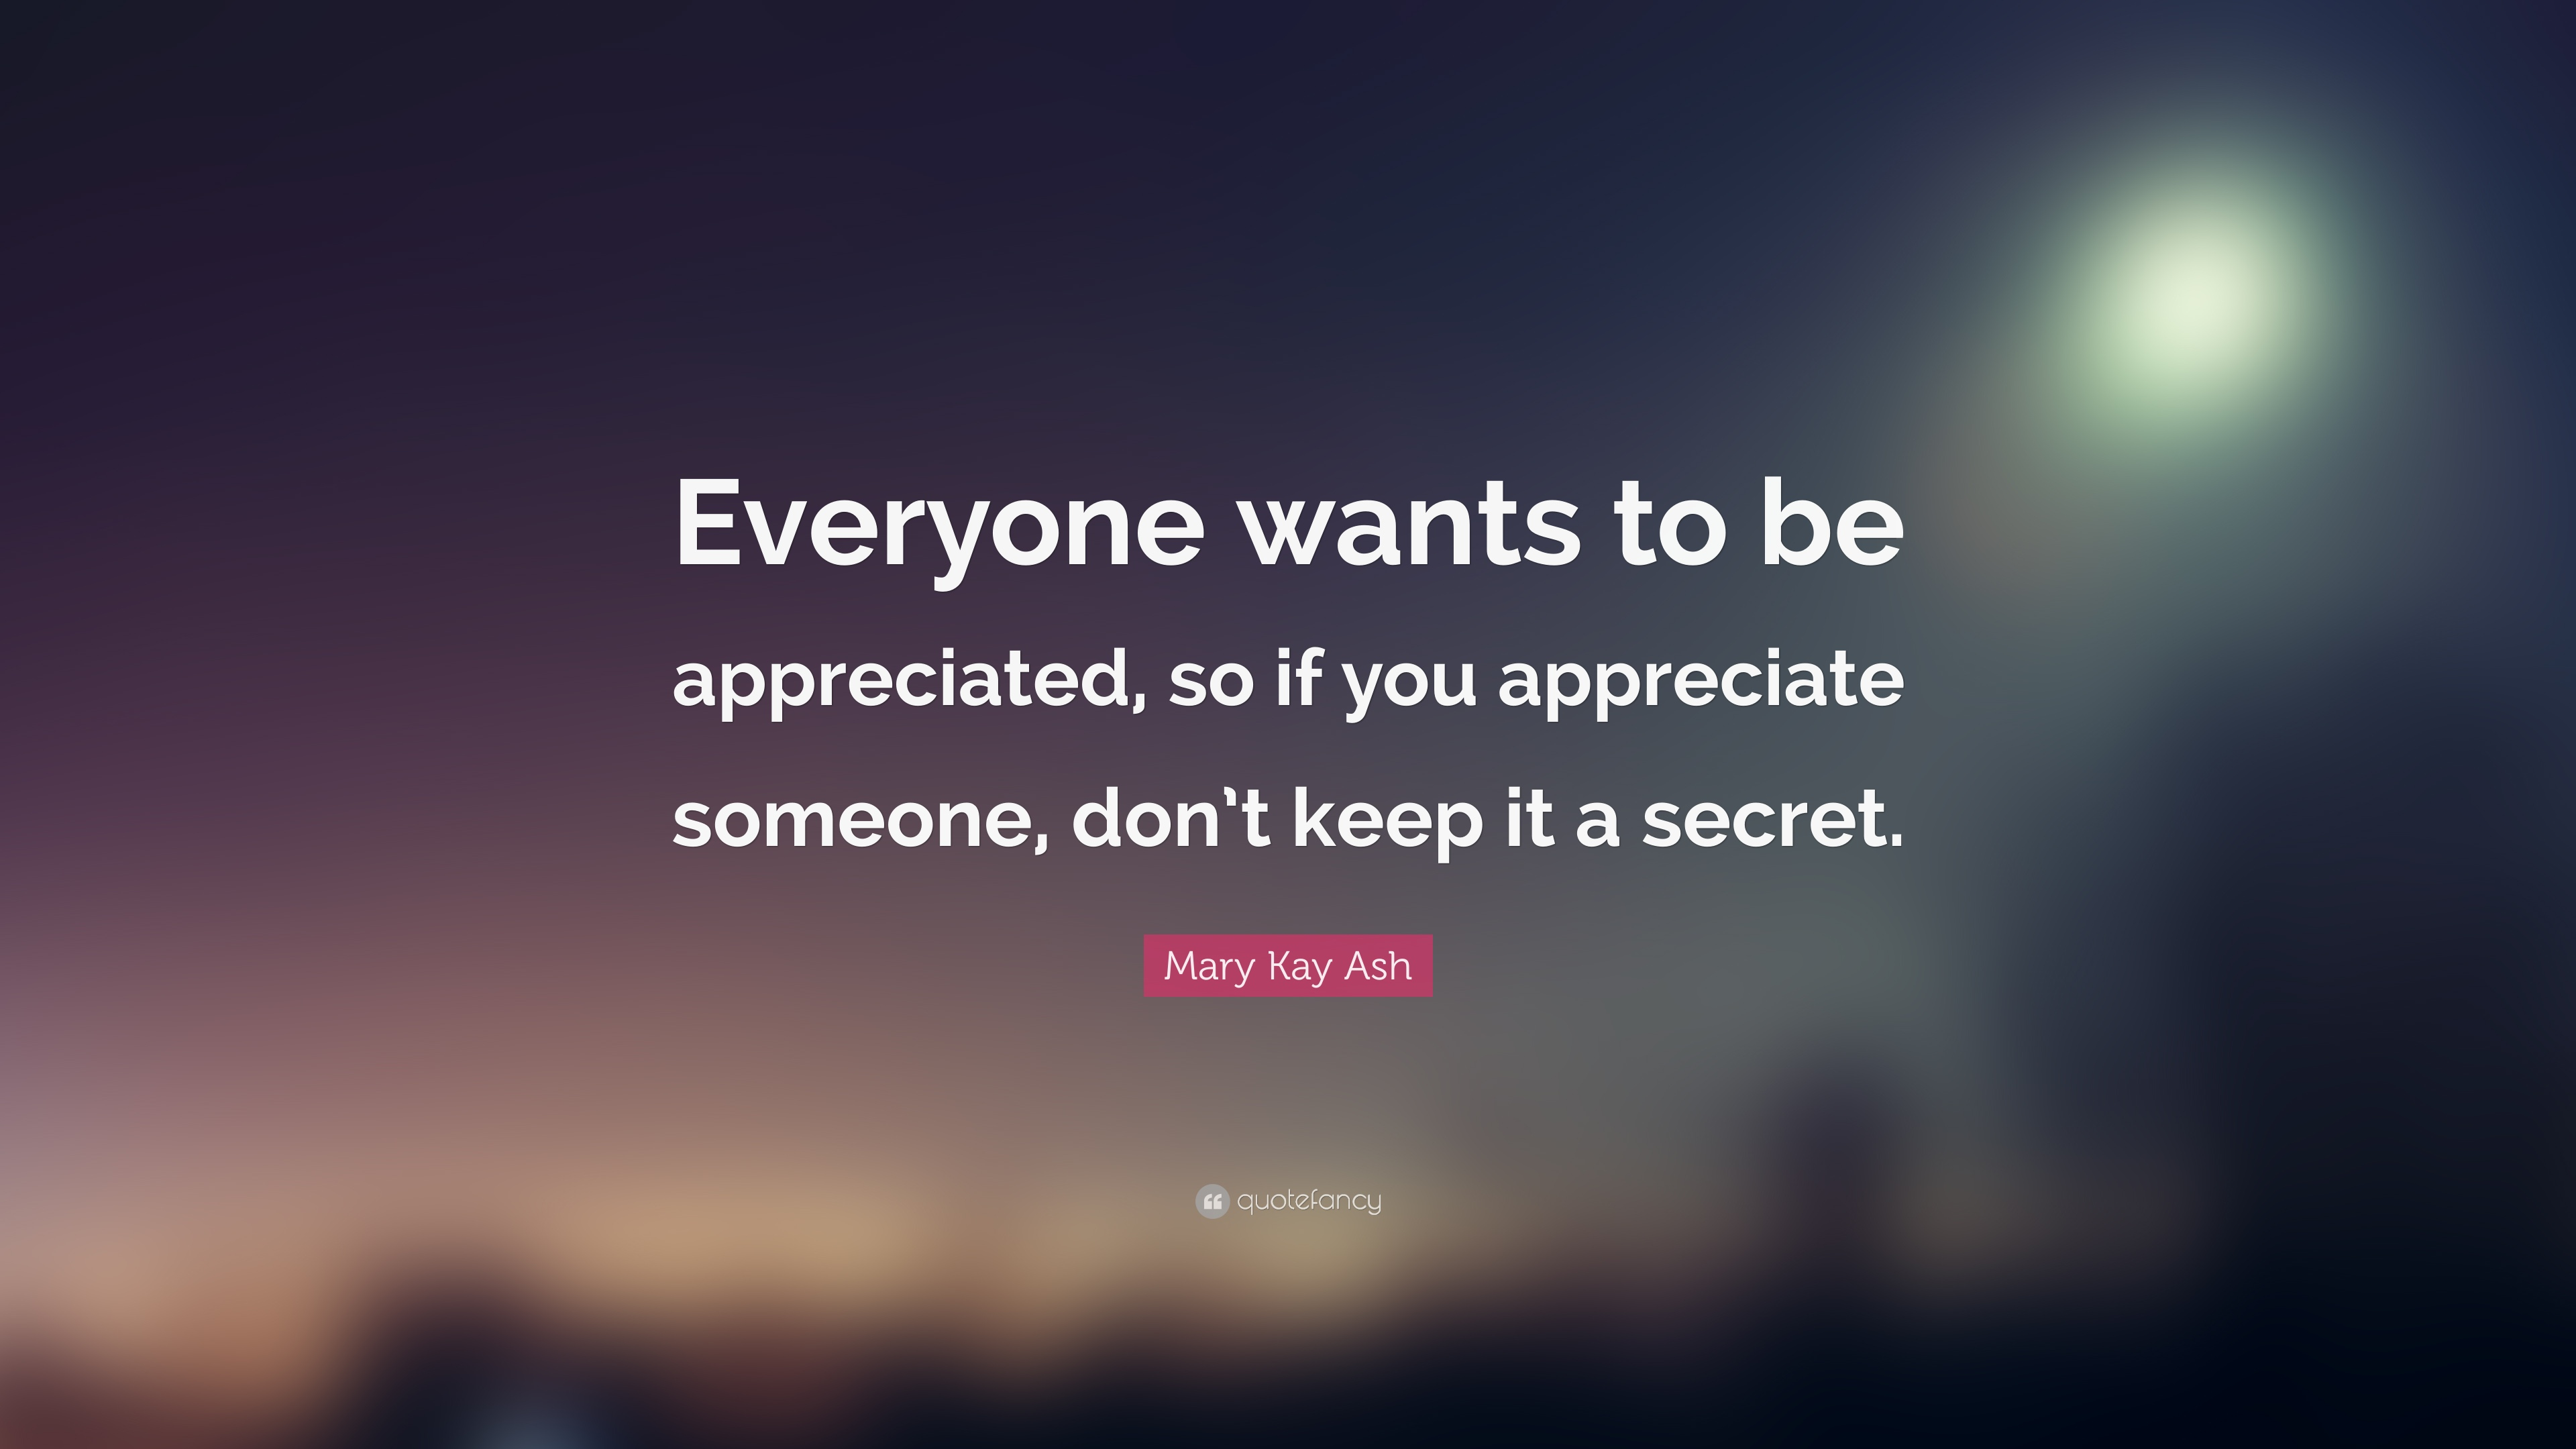 mary kay ash quote everyone wants to be appreciated so if you